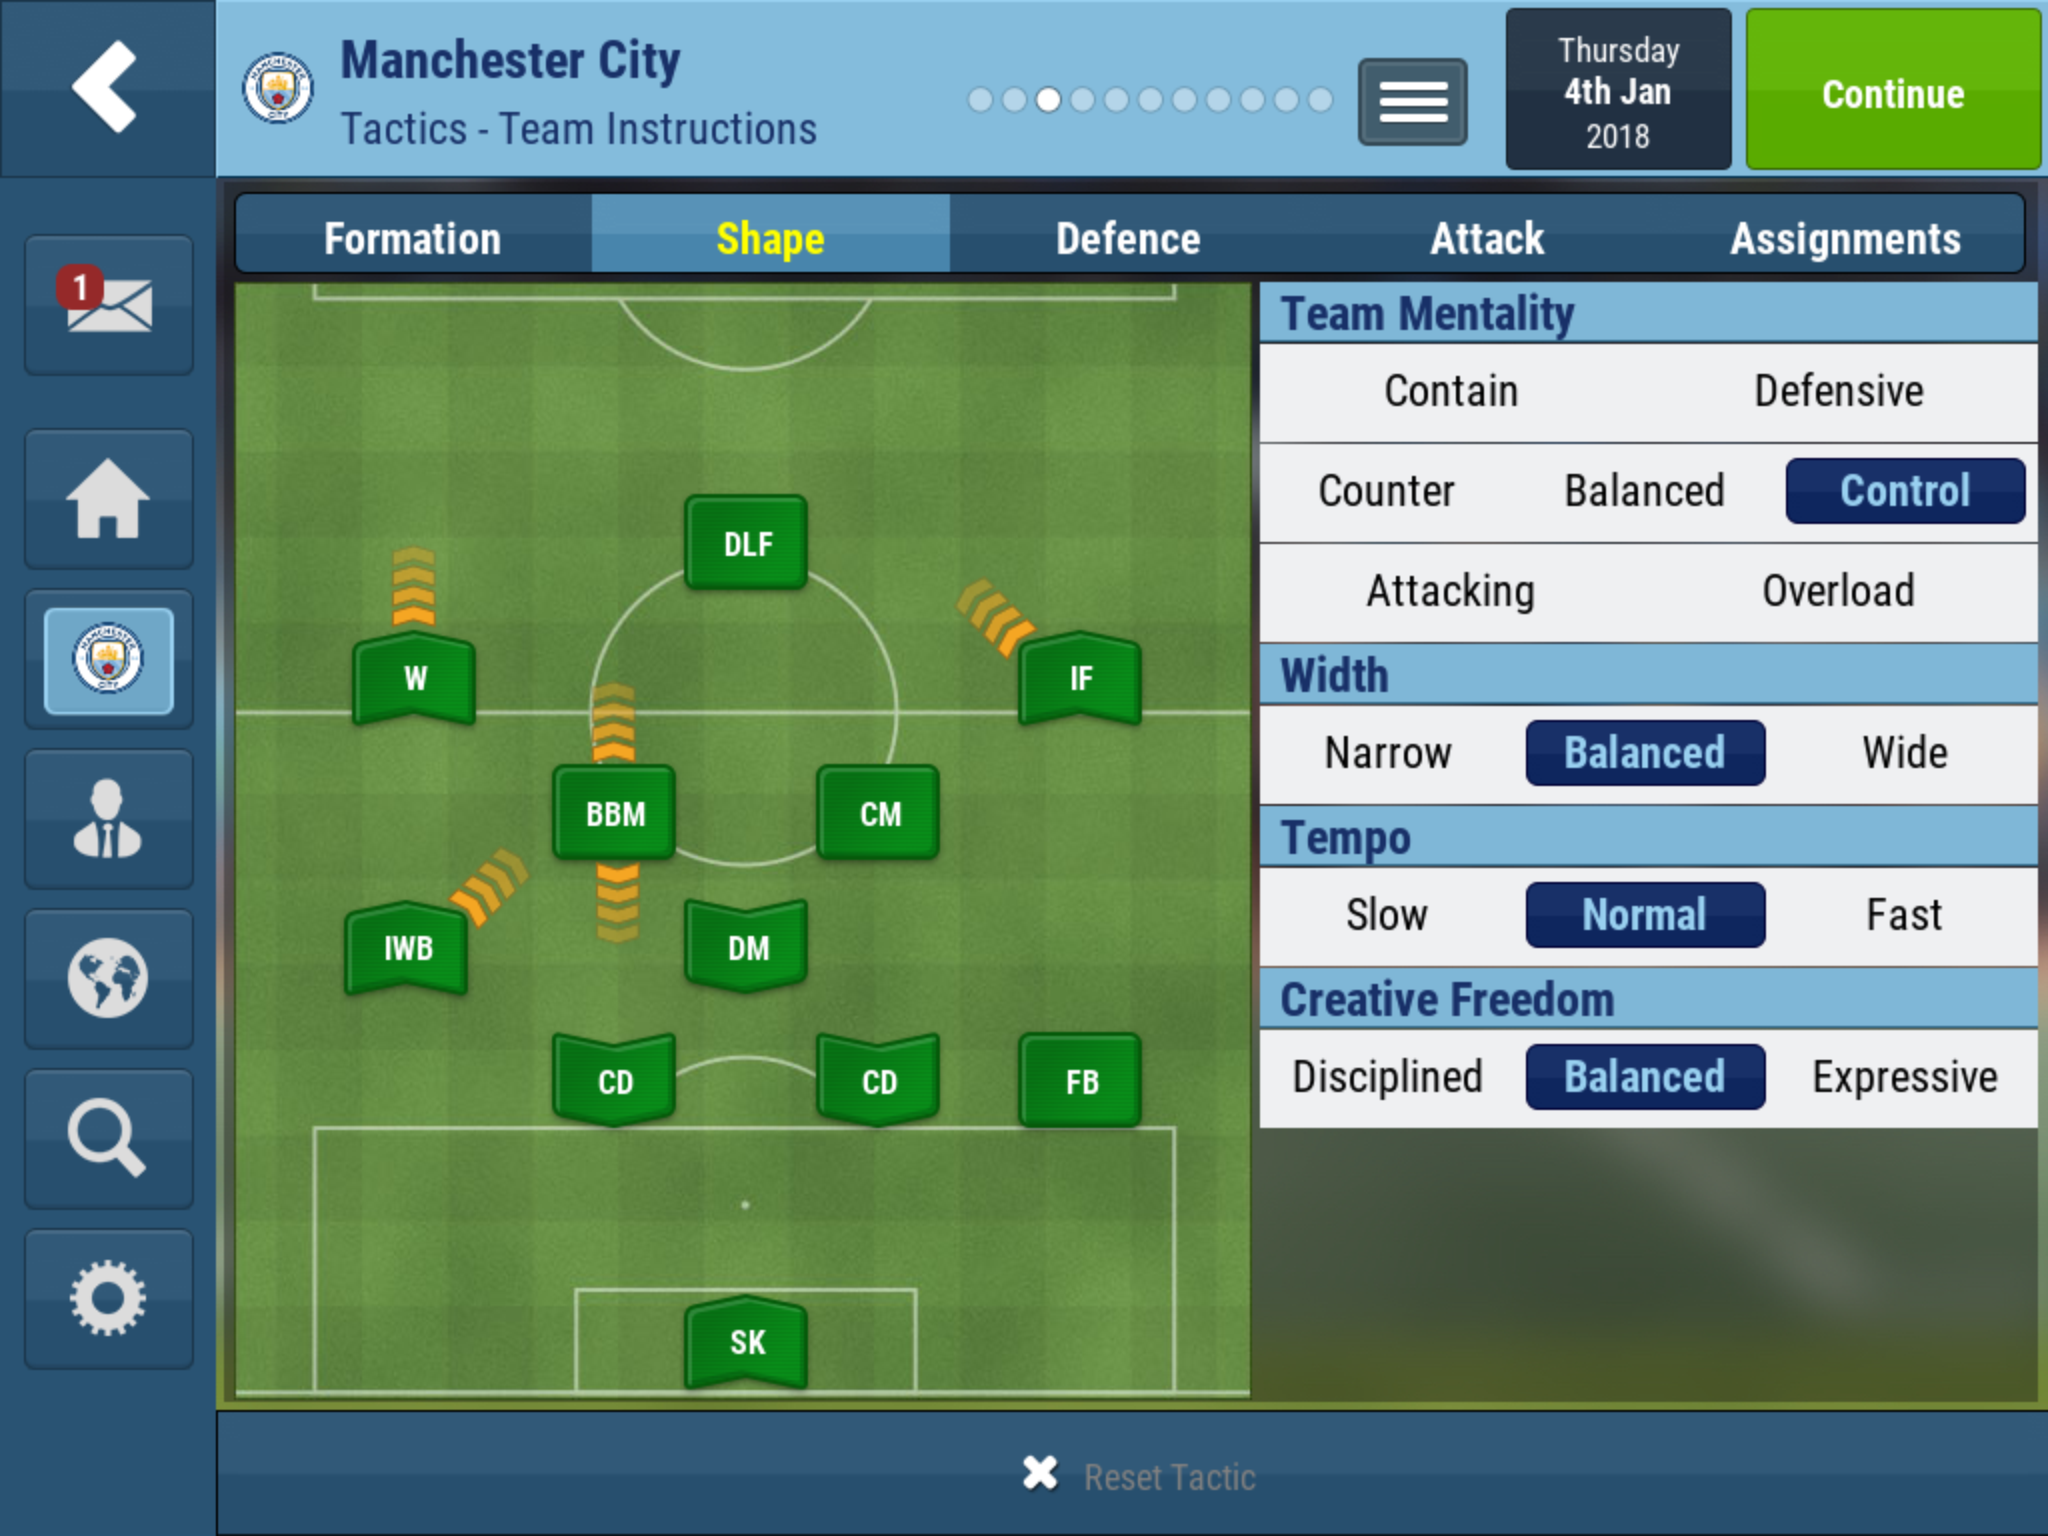 Pep Guardiolas Manchester City tactic - Football Manager